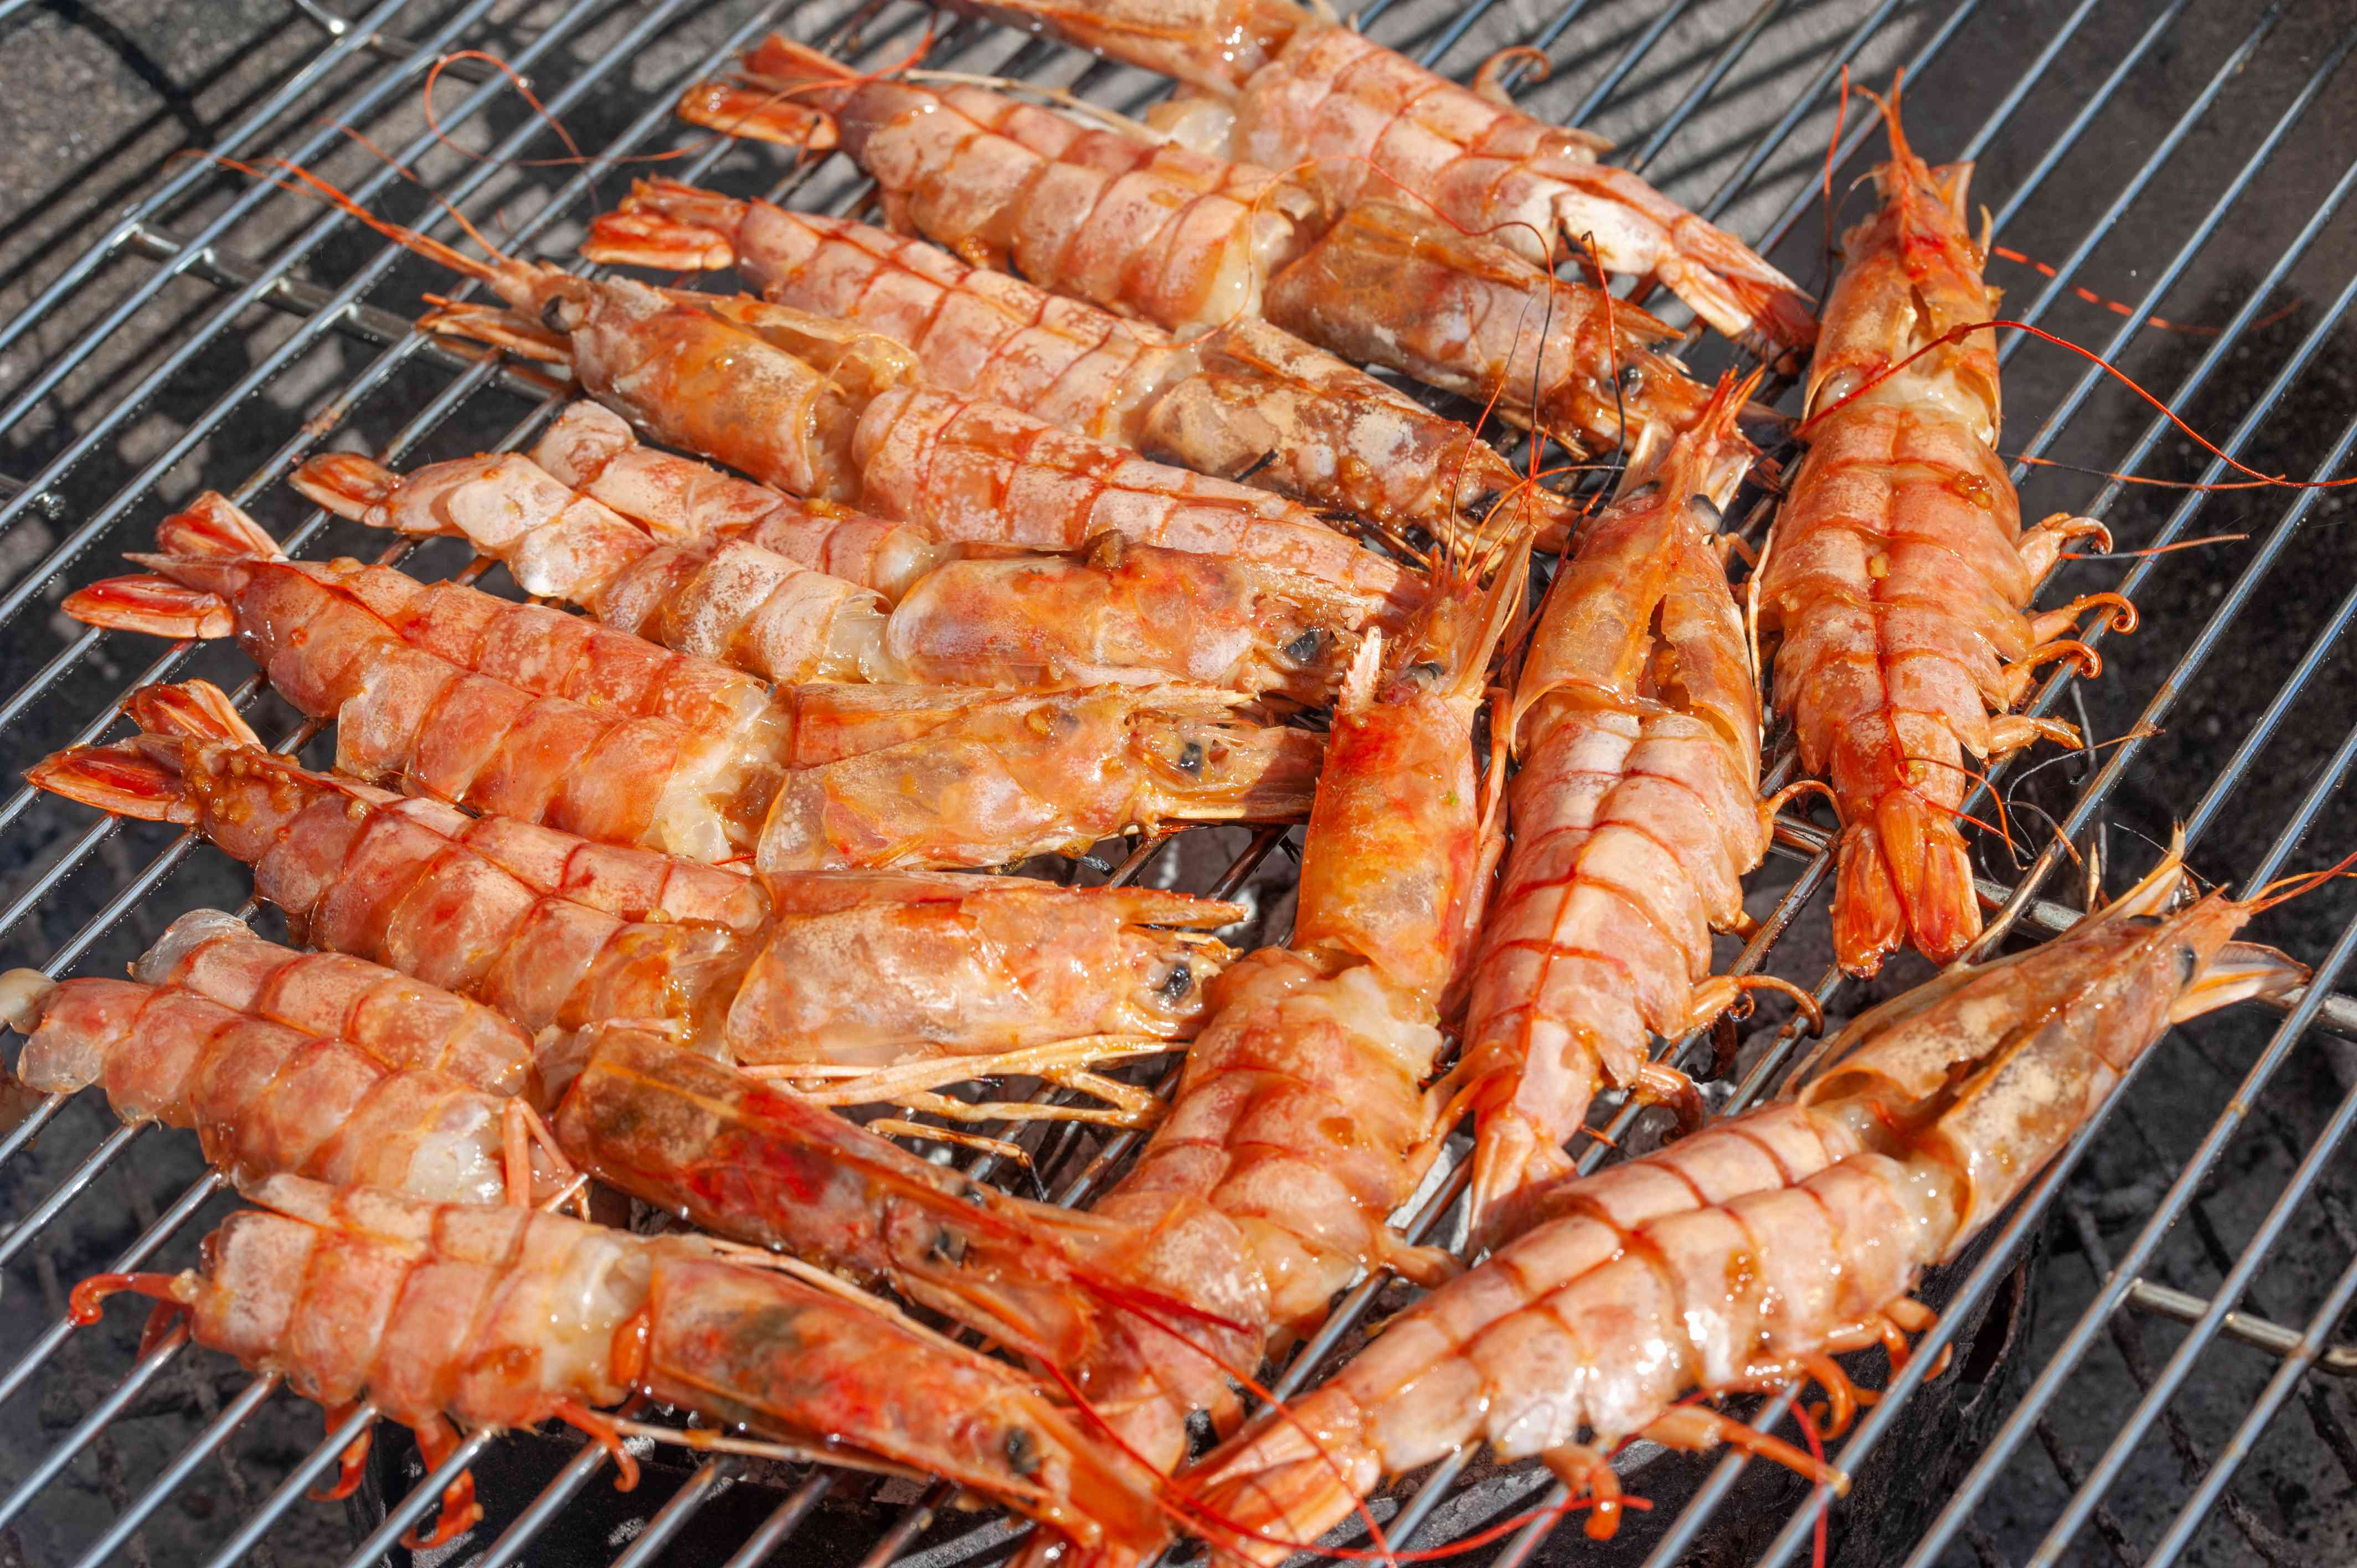 Prawns on the grill